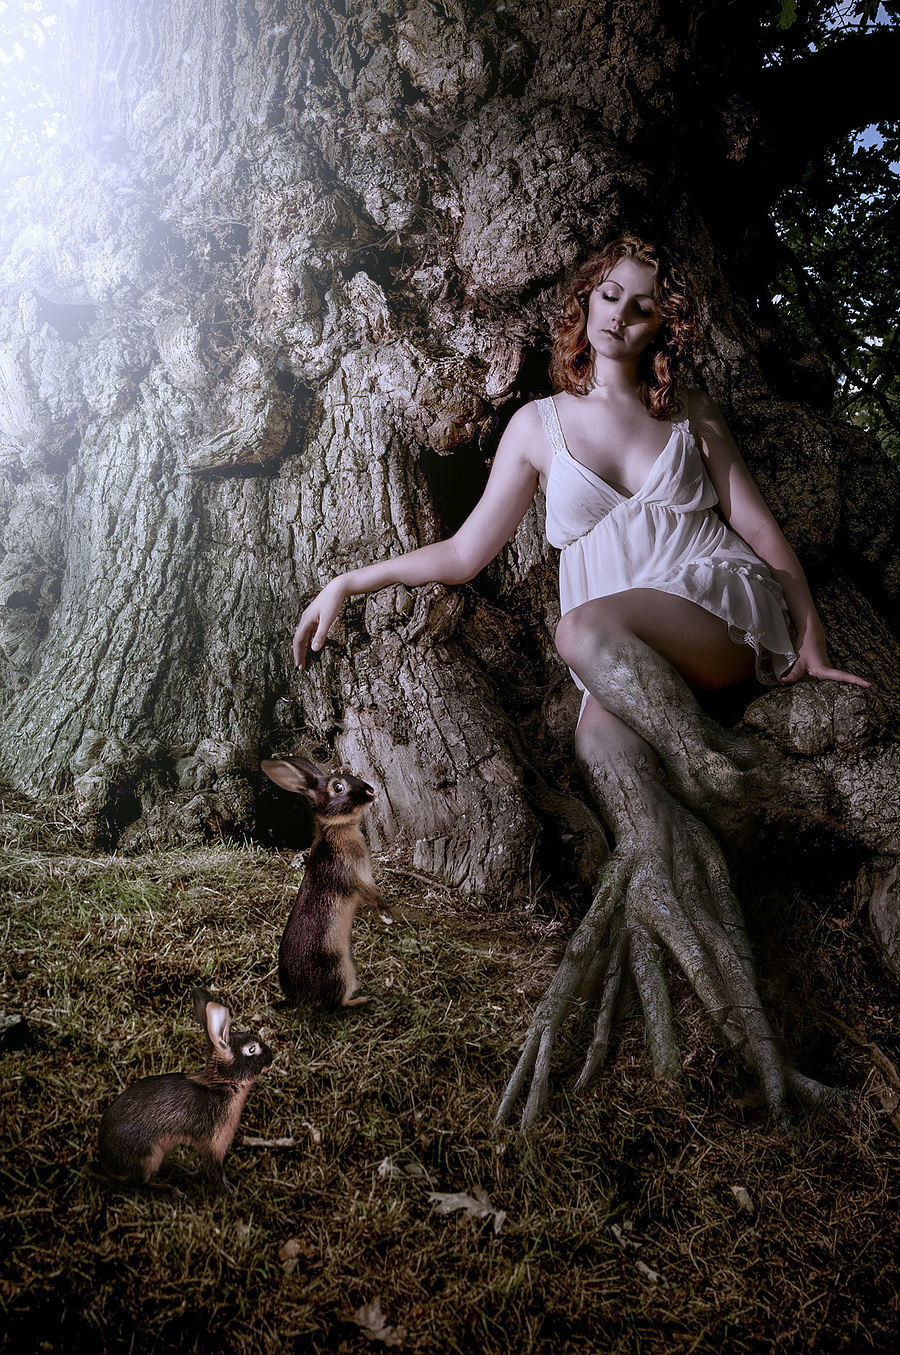 Roots / Photography by Andrew Dobell, Post processing by Creative Edge Retouch / Uploaded 1st December 2014 @ 02:09 PM